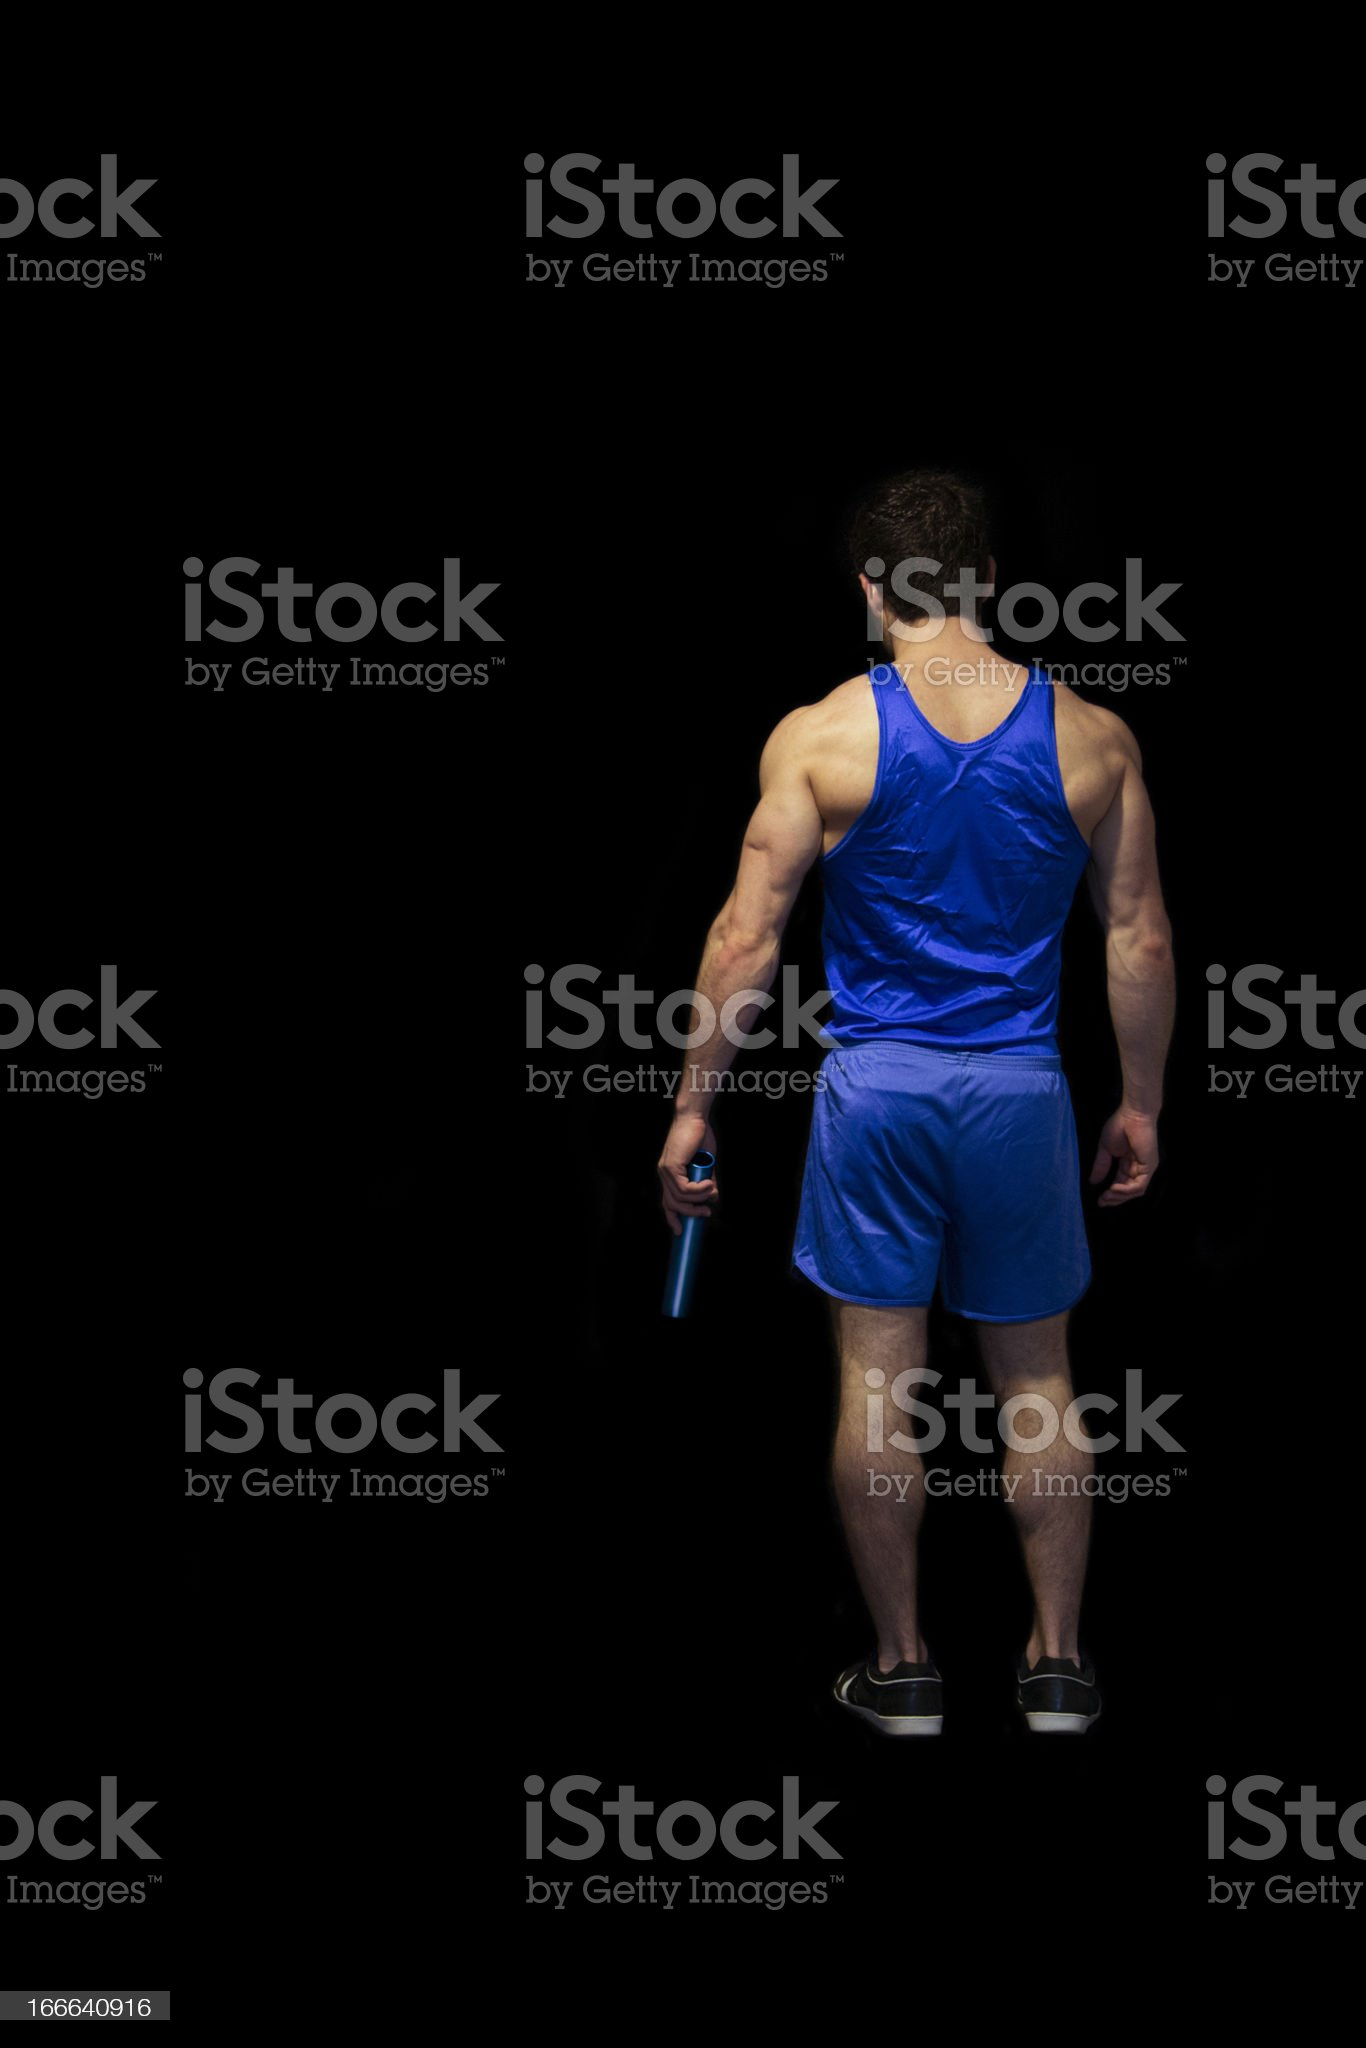 Waiting to Race royalty-free stock photo